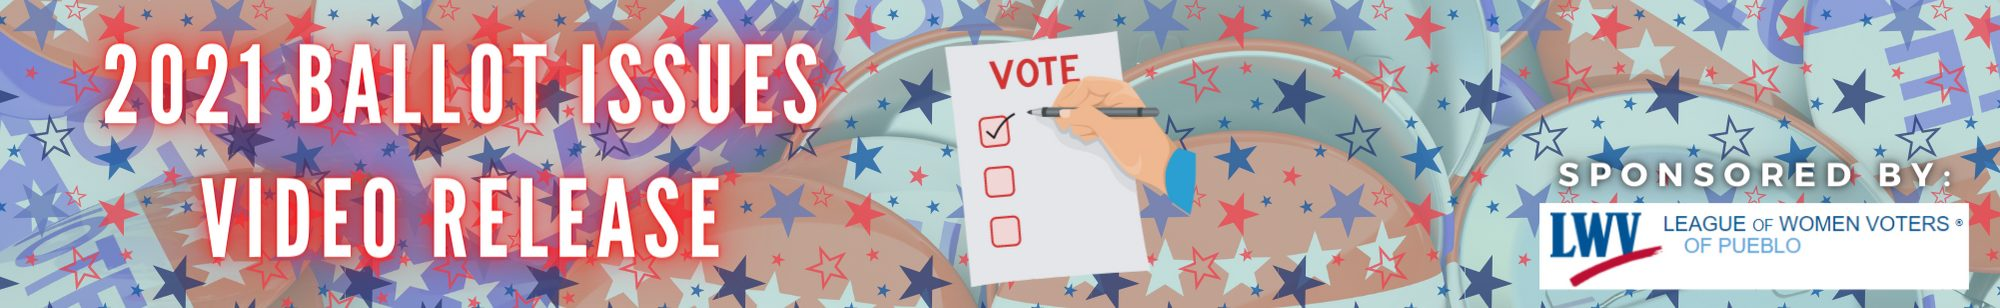 Copy of Ballot Issues Video Release